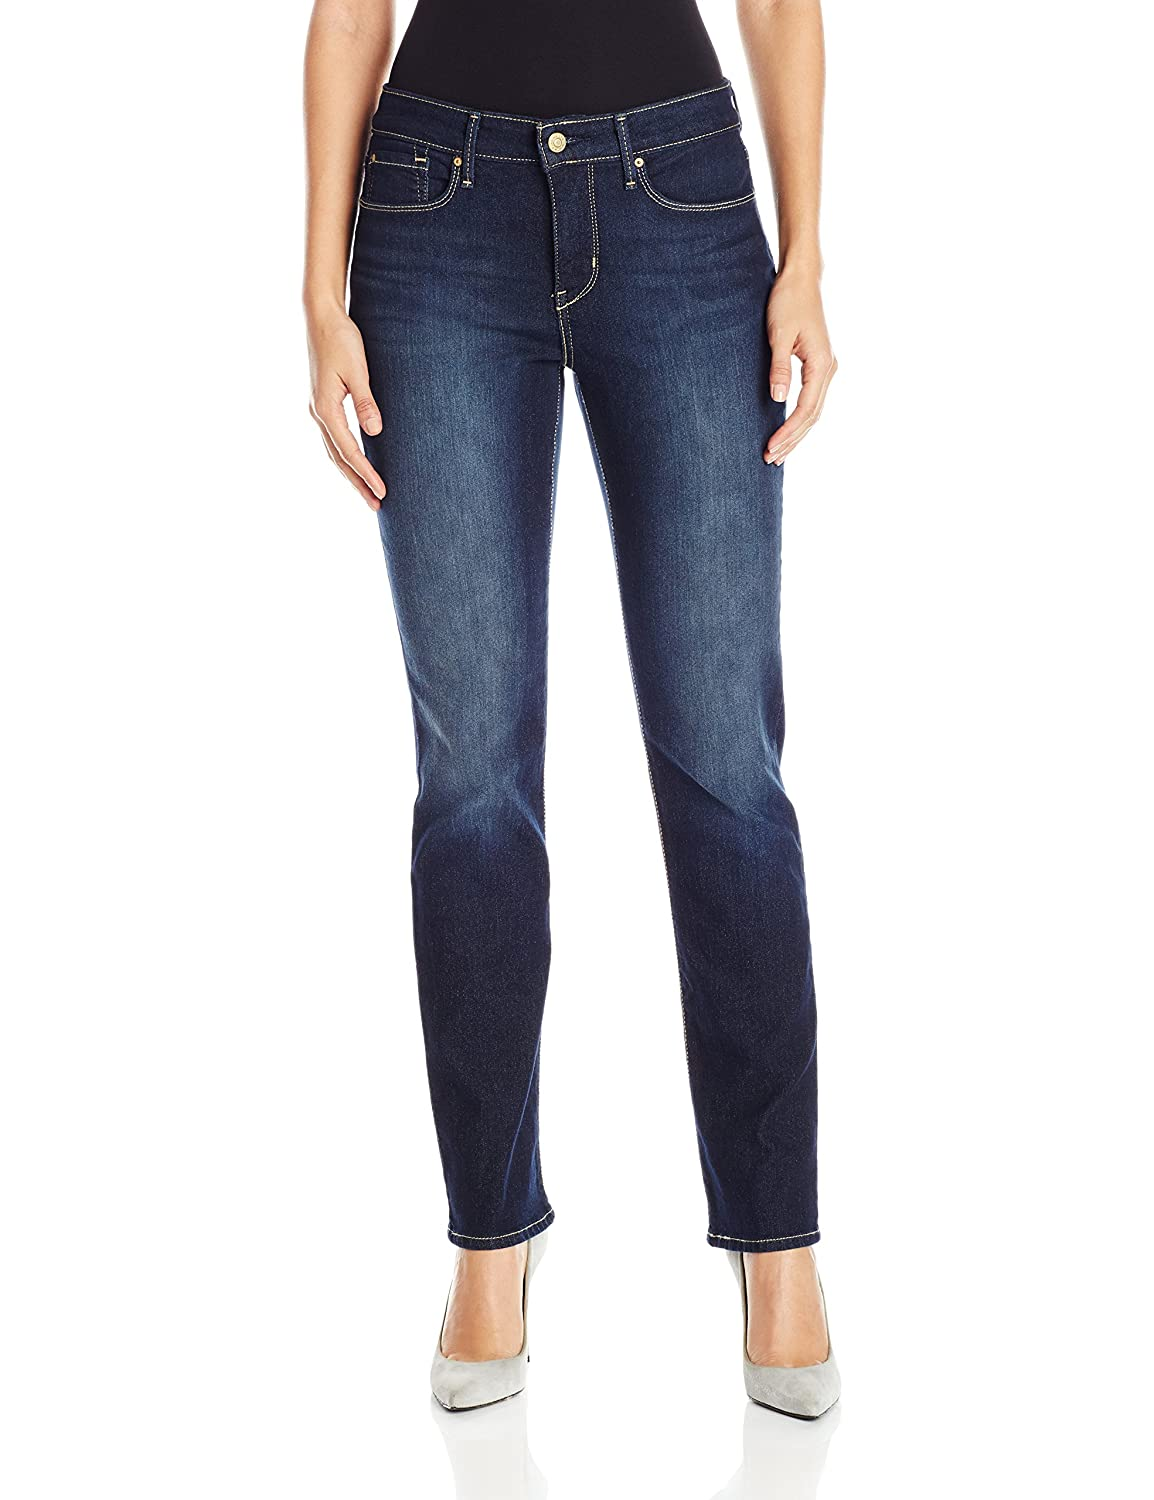 Signature by Levi Strauss & Co Womens Women's Totally Shaping Slim Straight Jeans 28707-0003